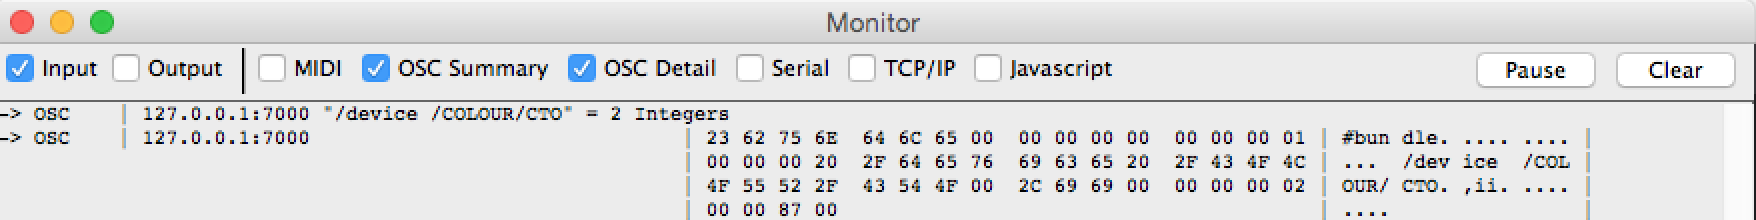 18e7c8-monitor-input-from-dlight.png